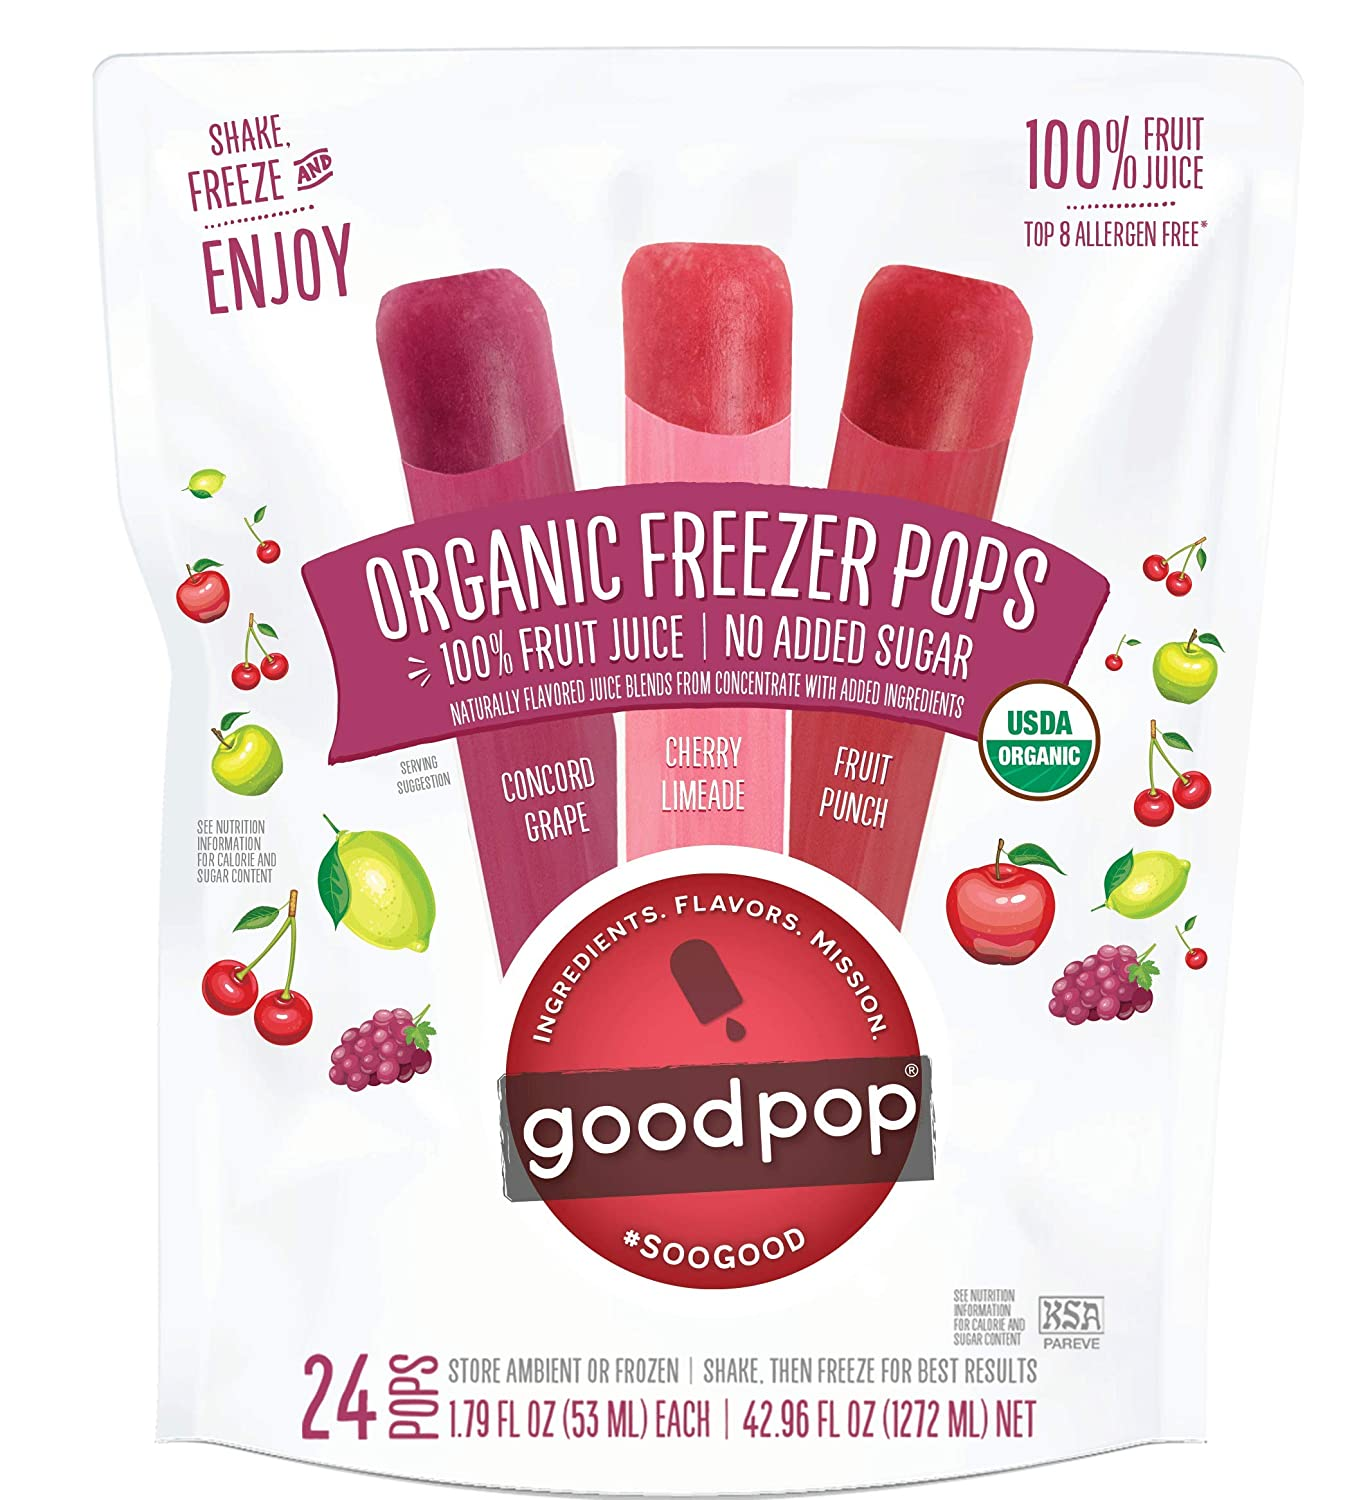 GoodPop Organic Freezer Pops - 100% Juice, No Added Sugar - 24ct